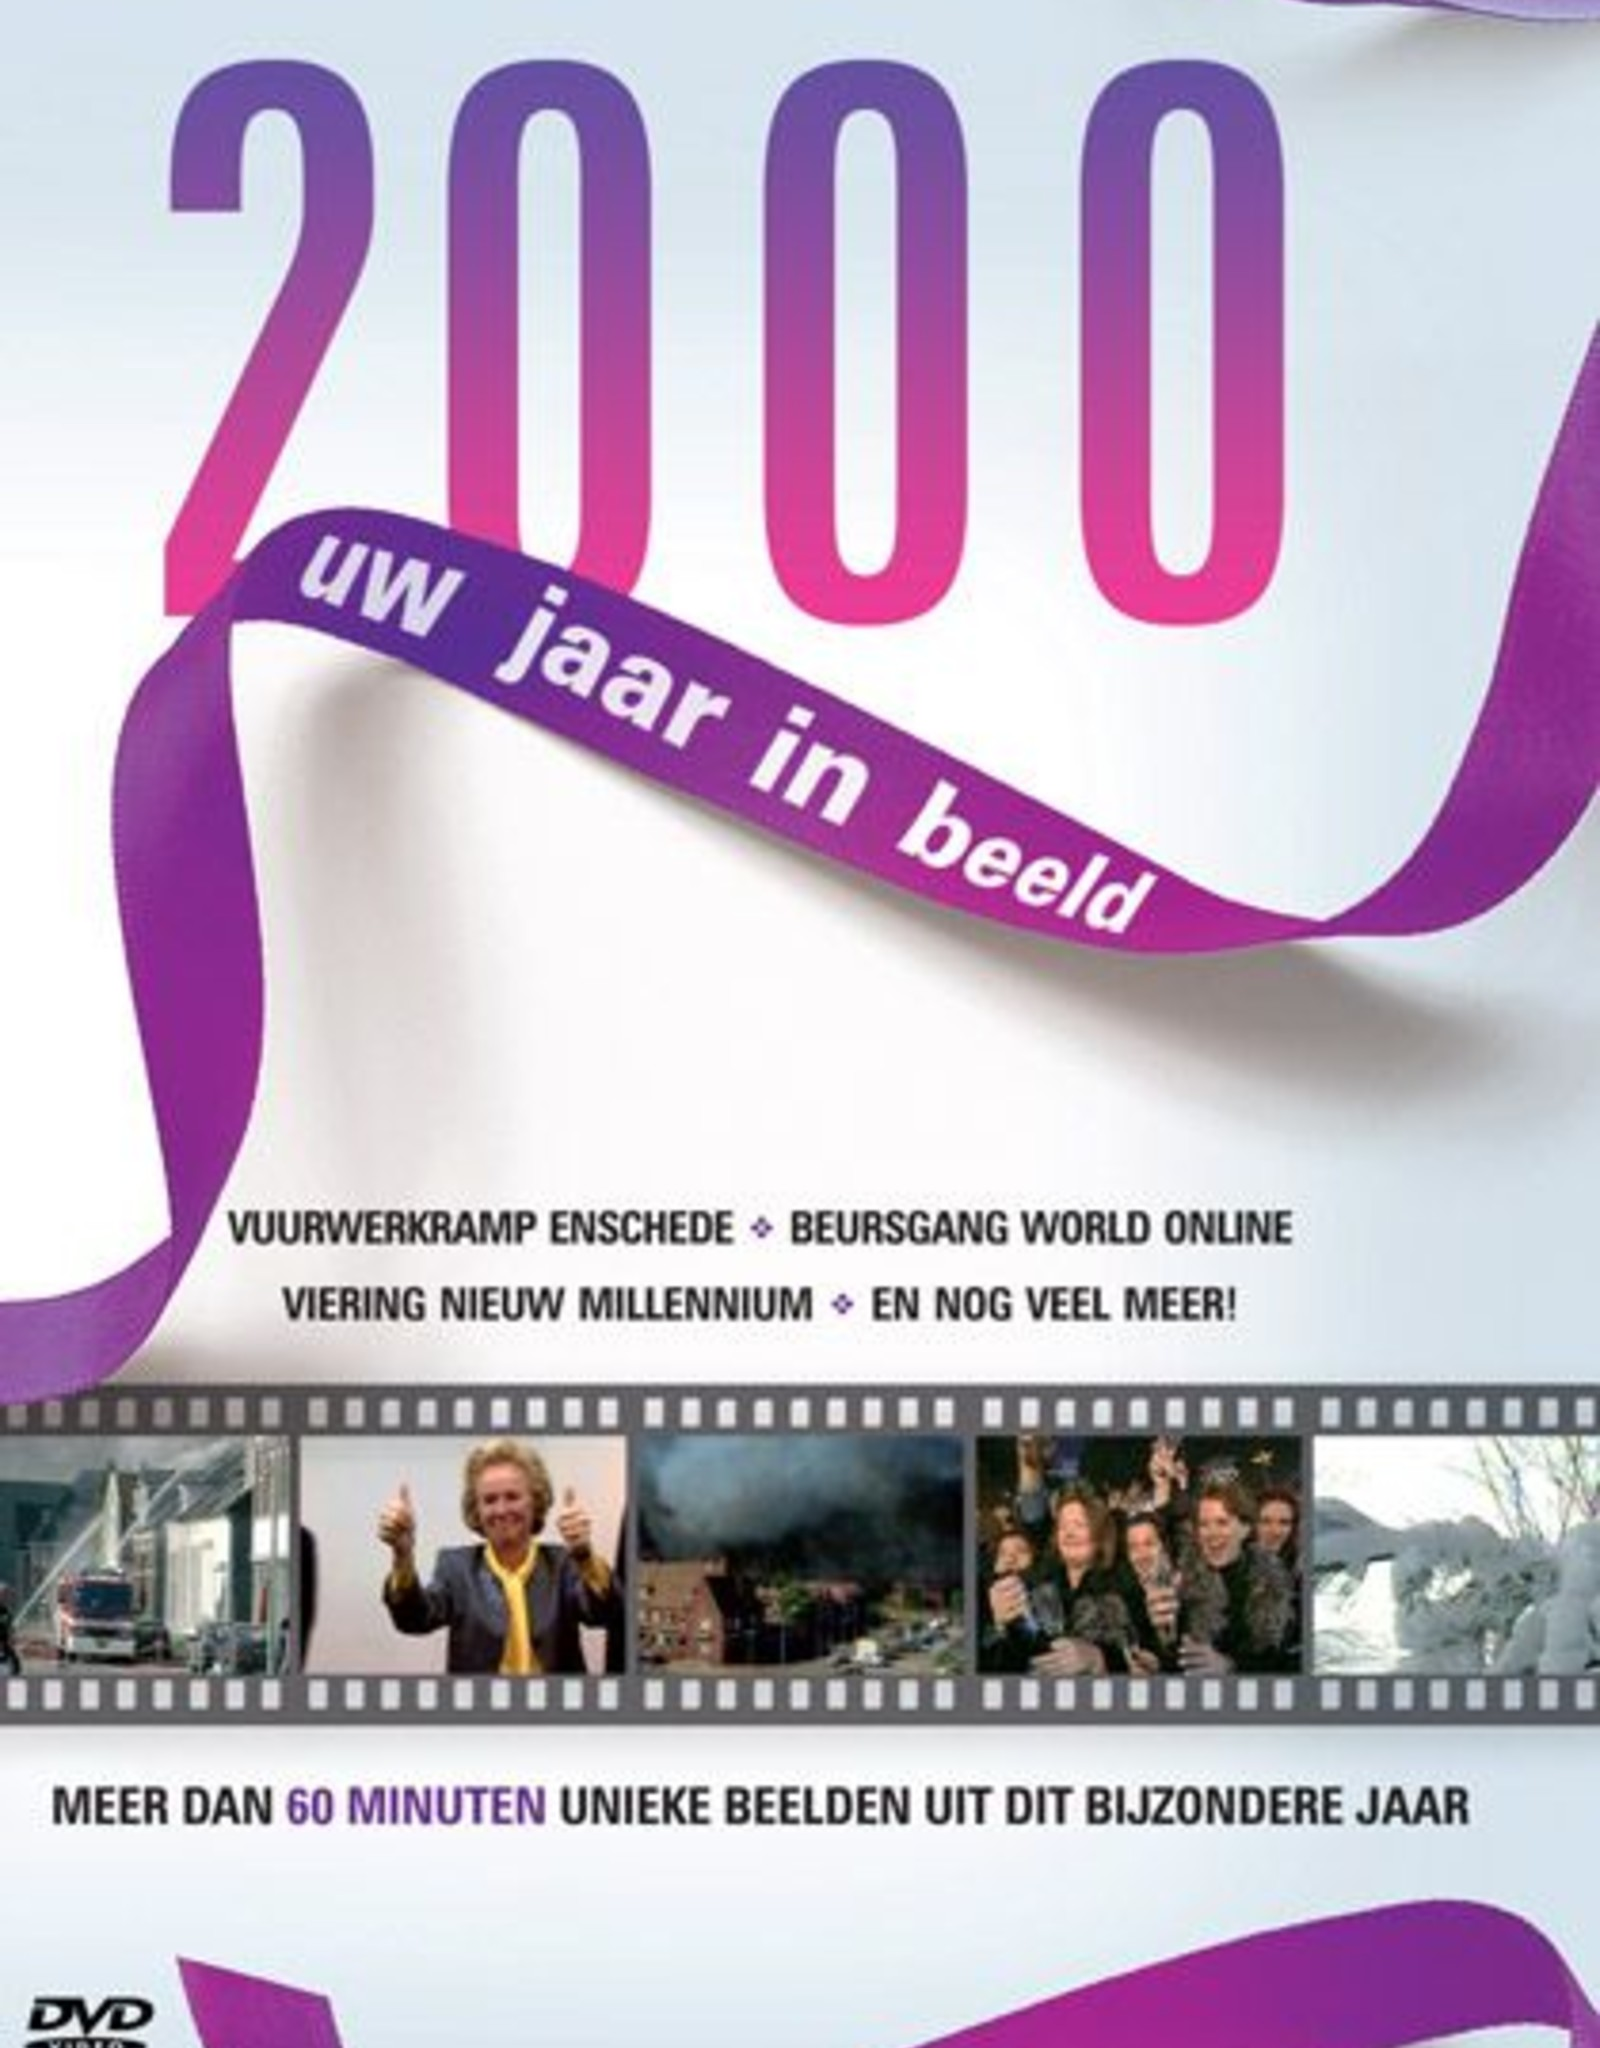 Just Entertainment Uw Jaar in Beeld 2000